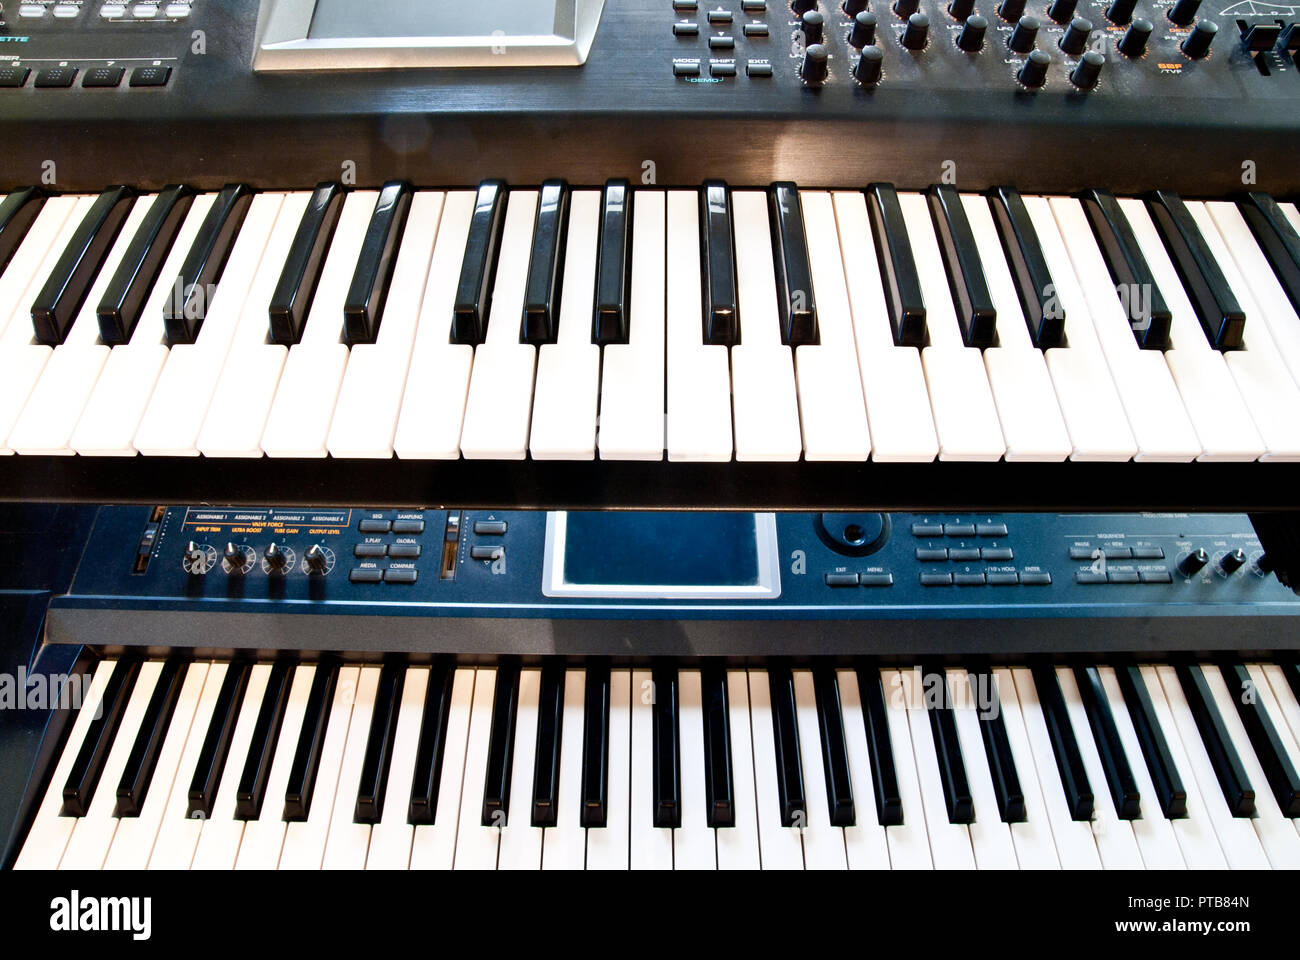 electronic synthesizer with keyboard and knobs closeup - Stock Image